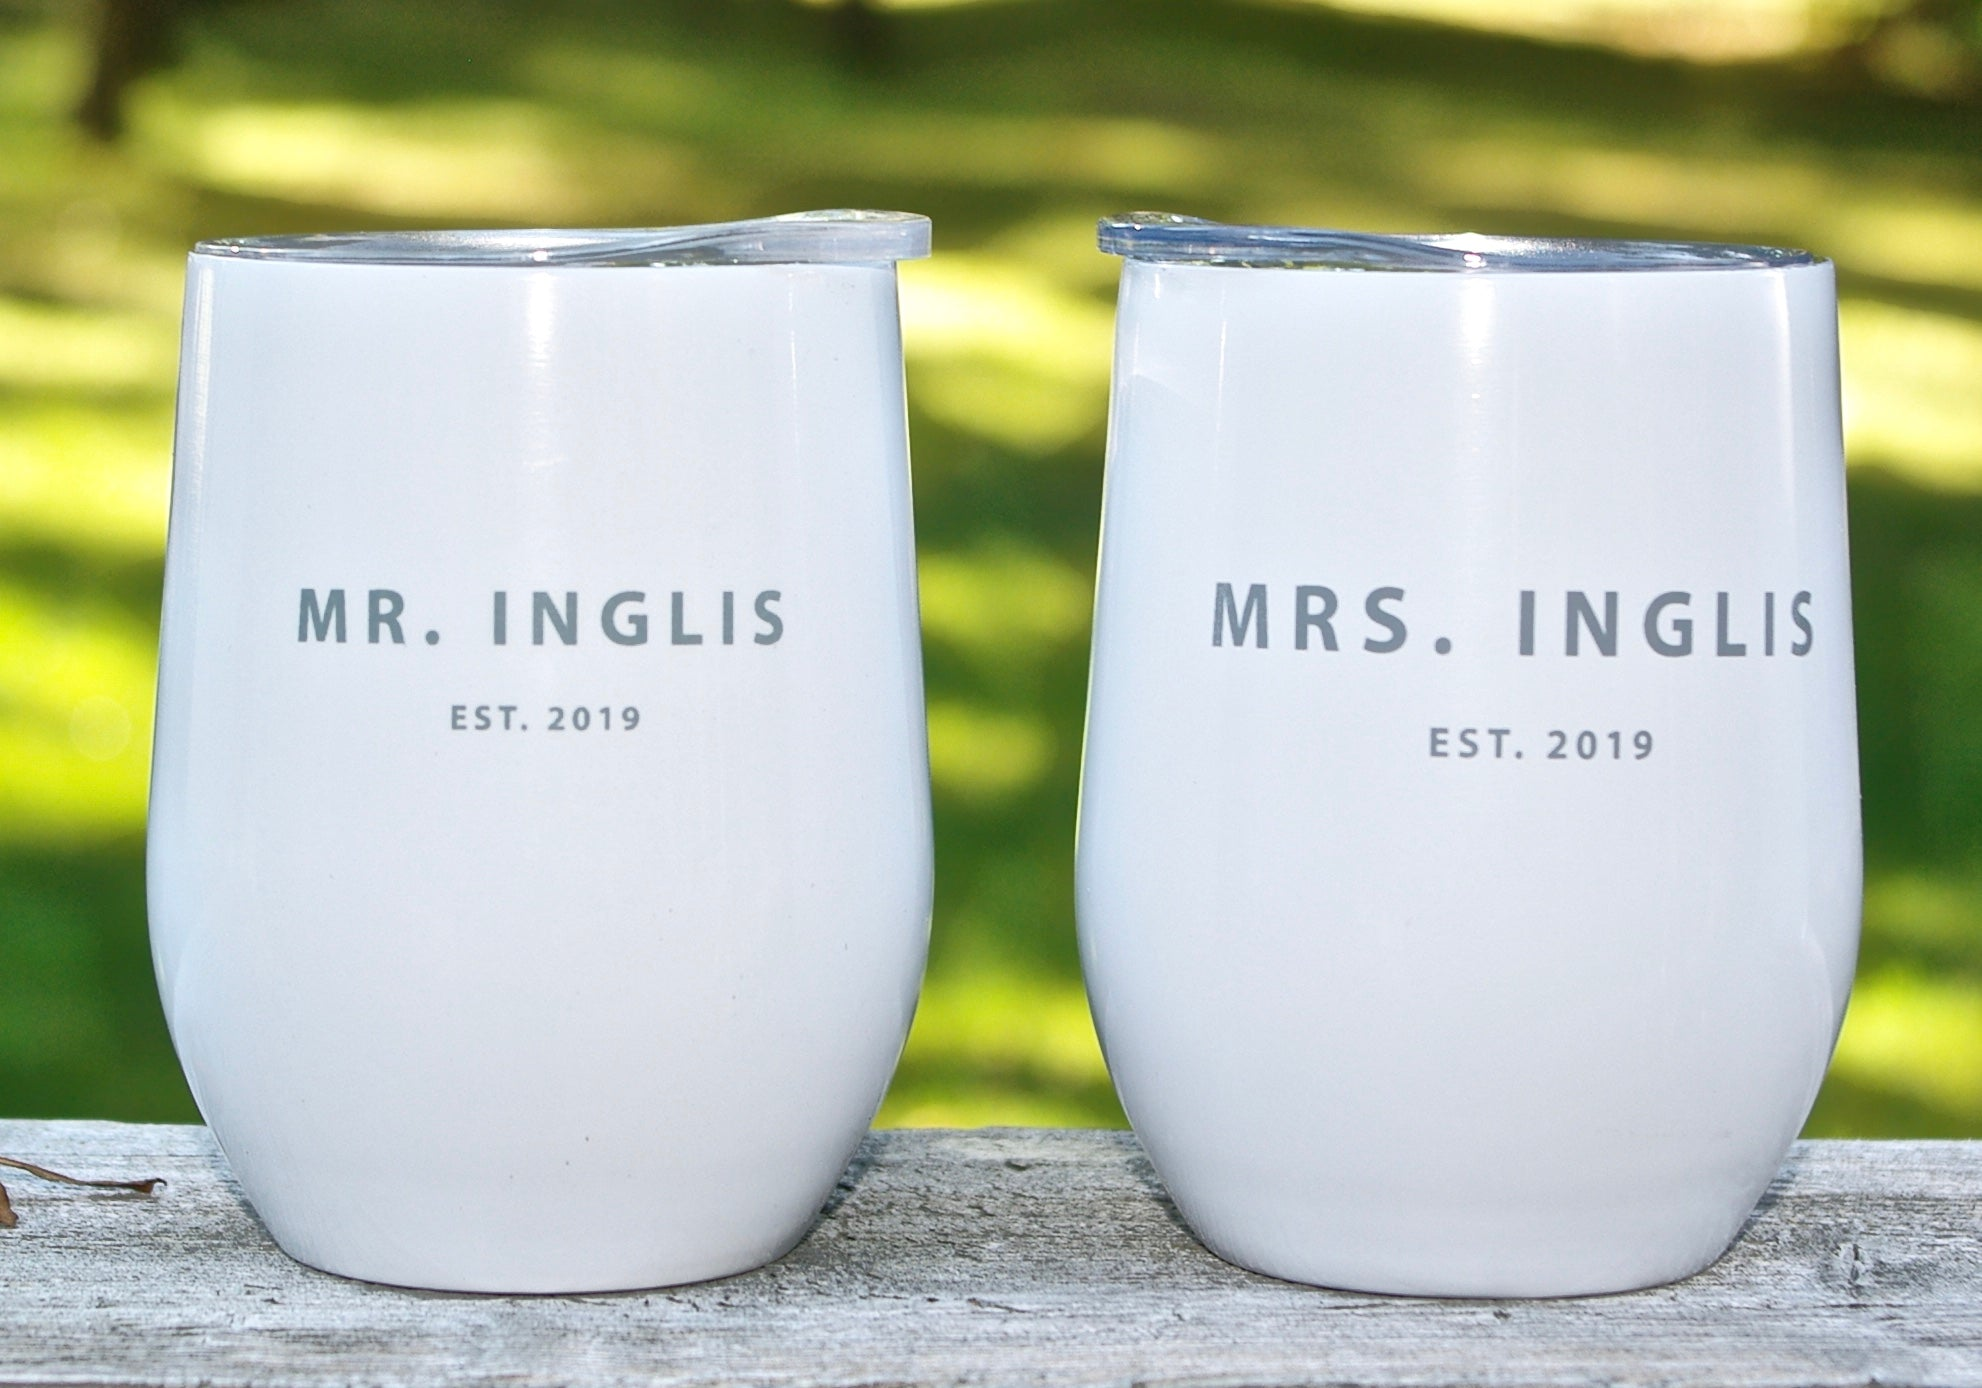 personalized wine tumbler for him personalized wine tumbler canada personalized wine tumbler personalized wedding gifts